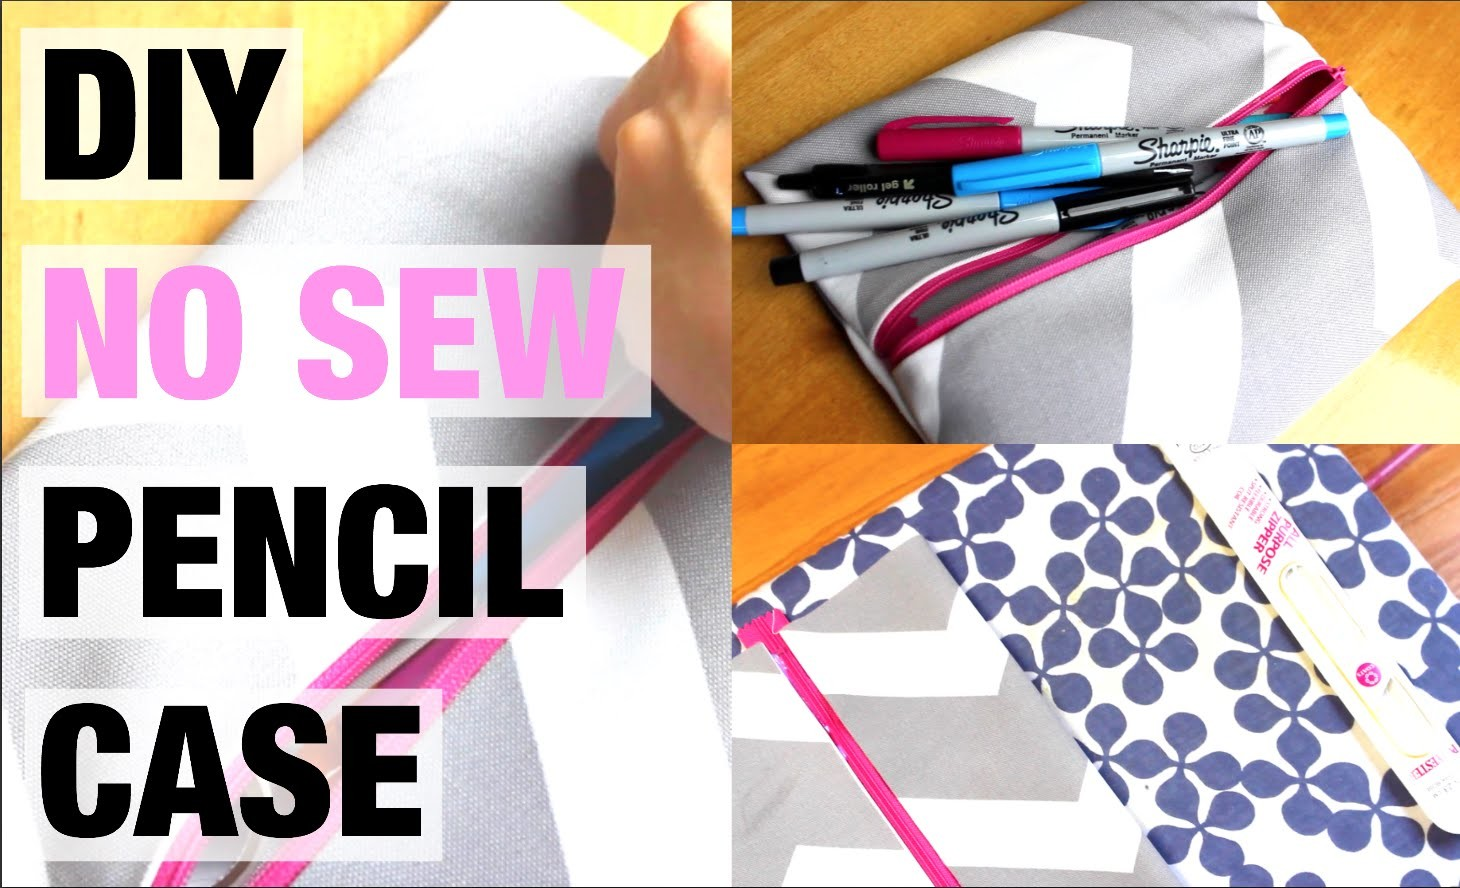 DIY FRIDAY: No Sew Pencil Case (Easy and Fun!)